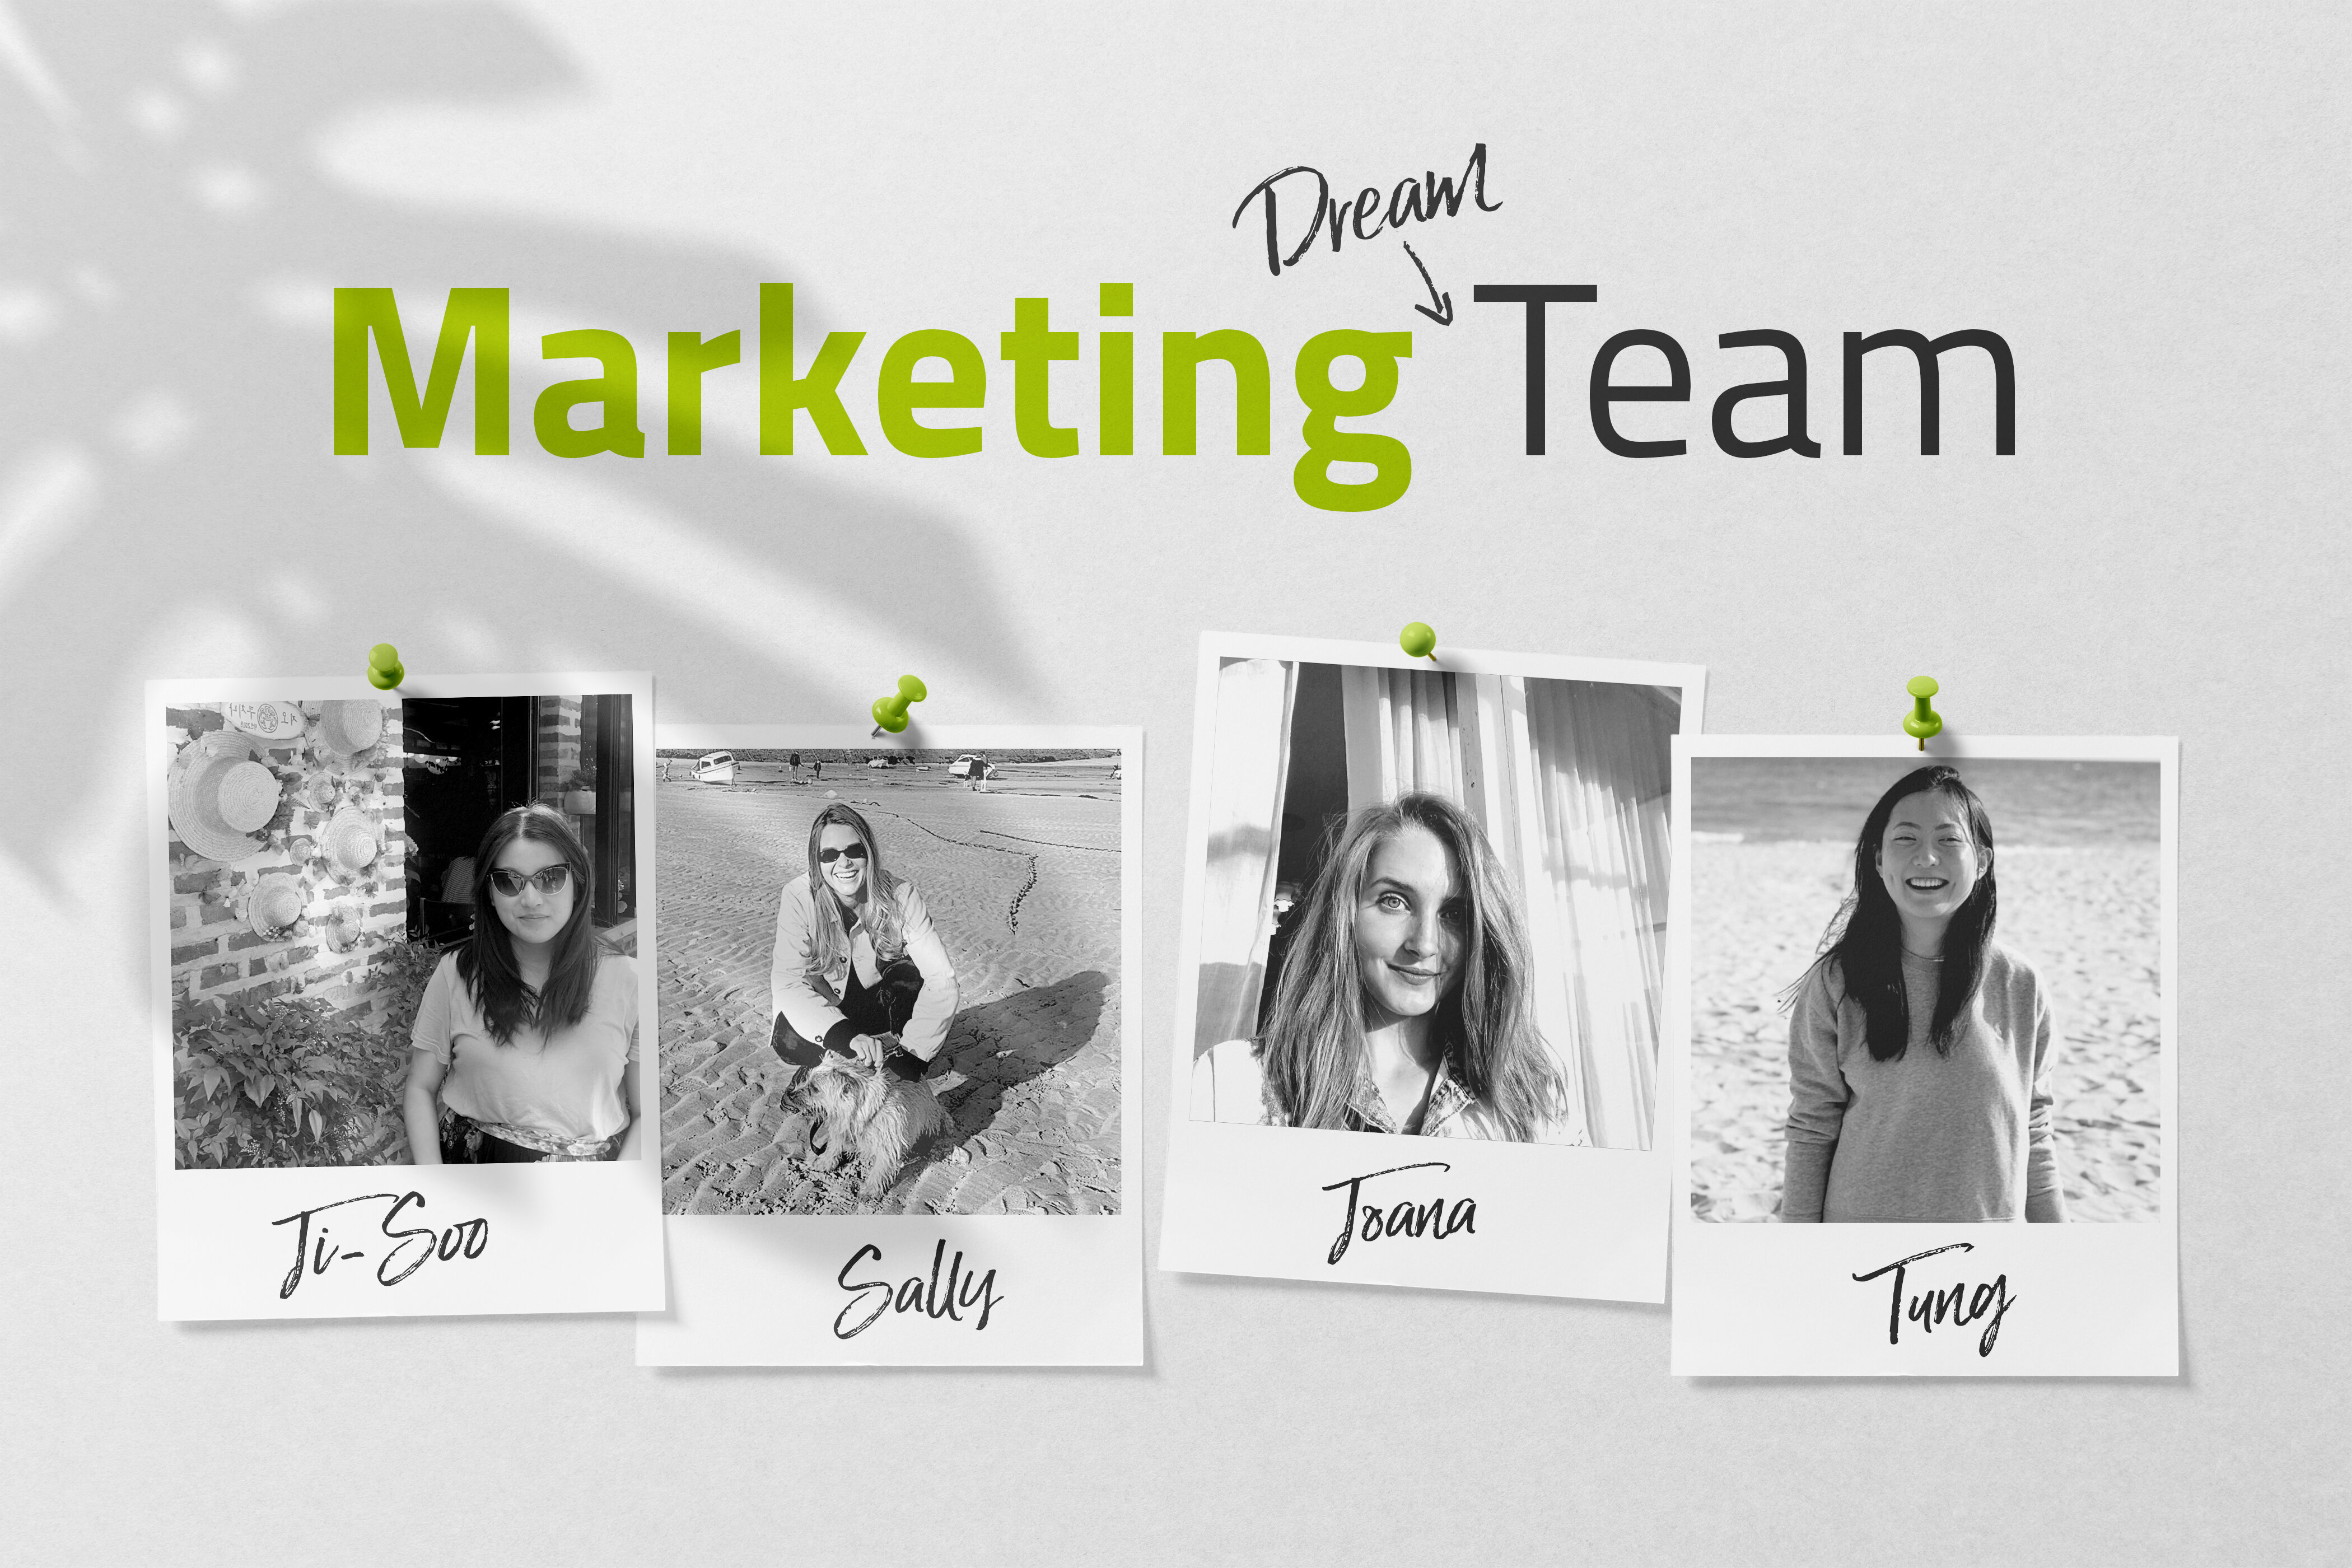 The keylight Marketing (dream) Team members depicted on a board of black and white polaroid pictures.